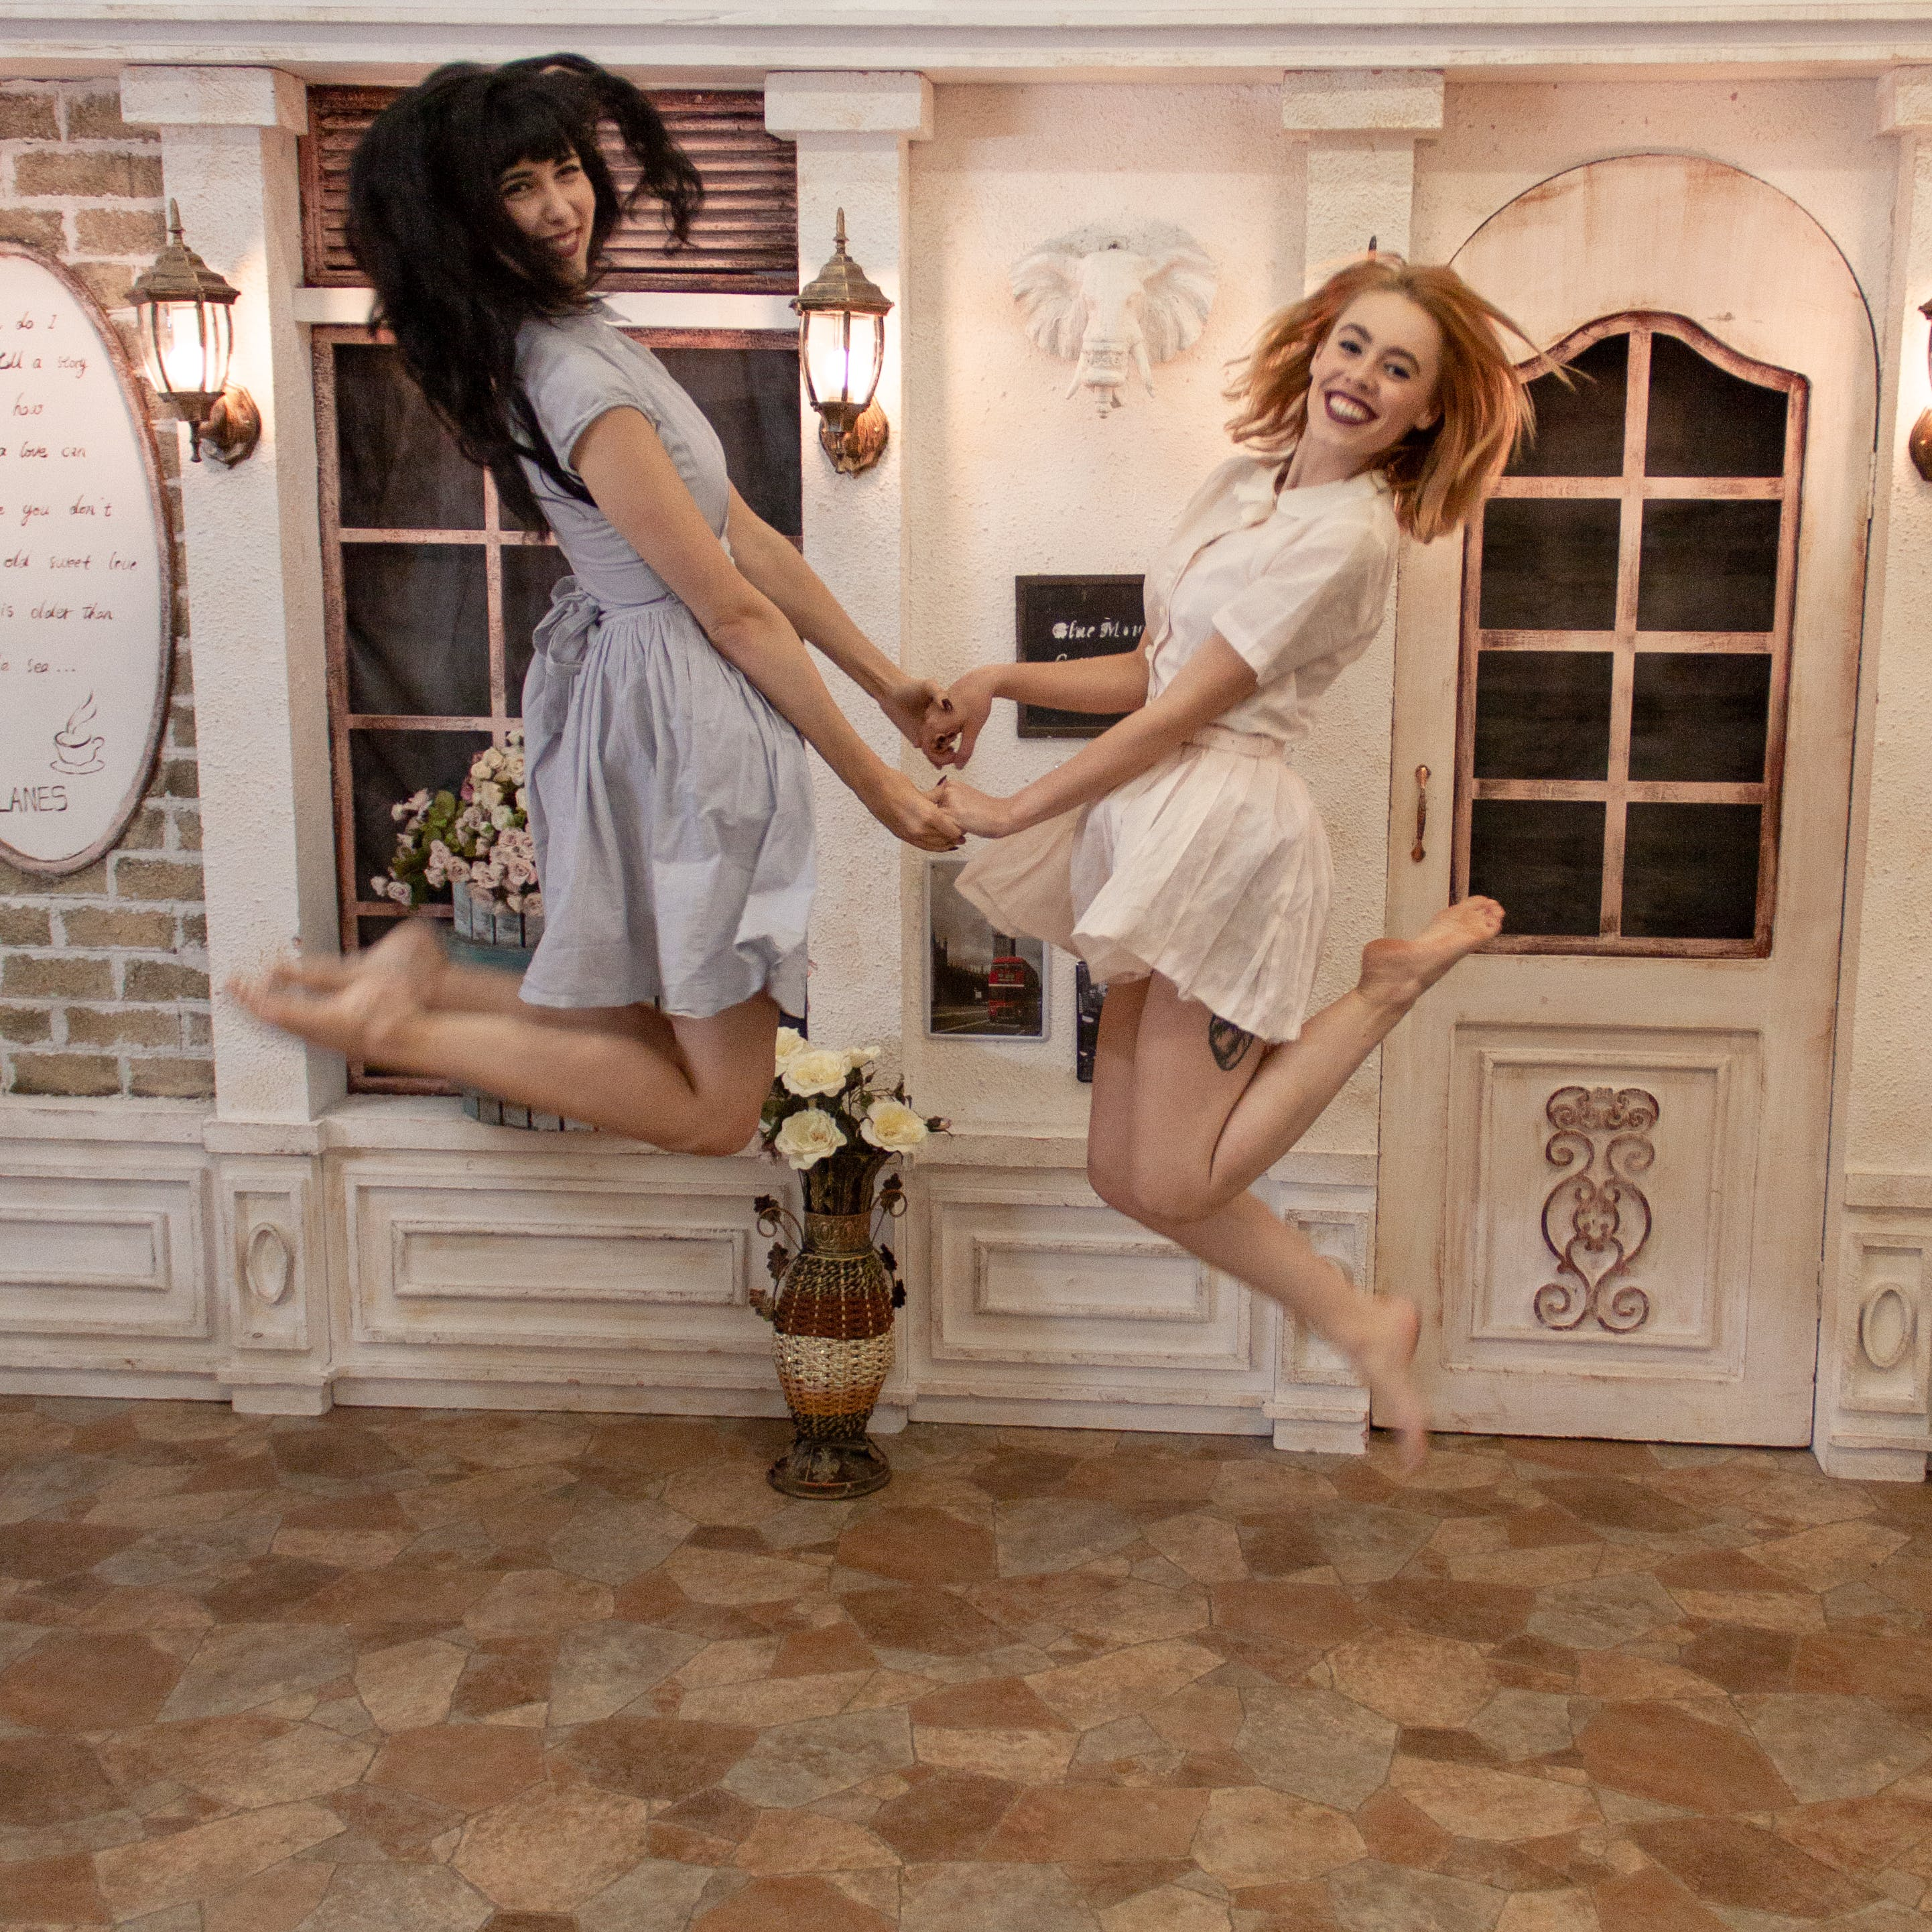 Photo of Two Women Jumping